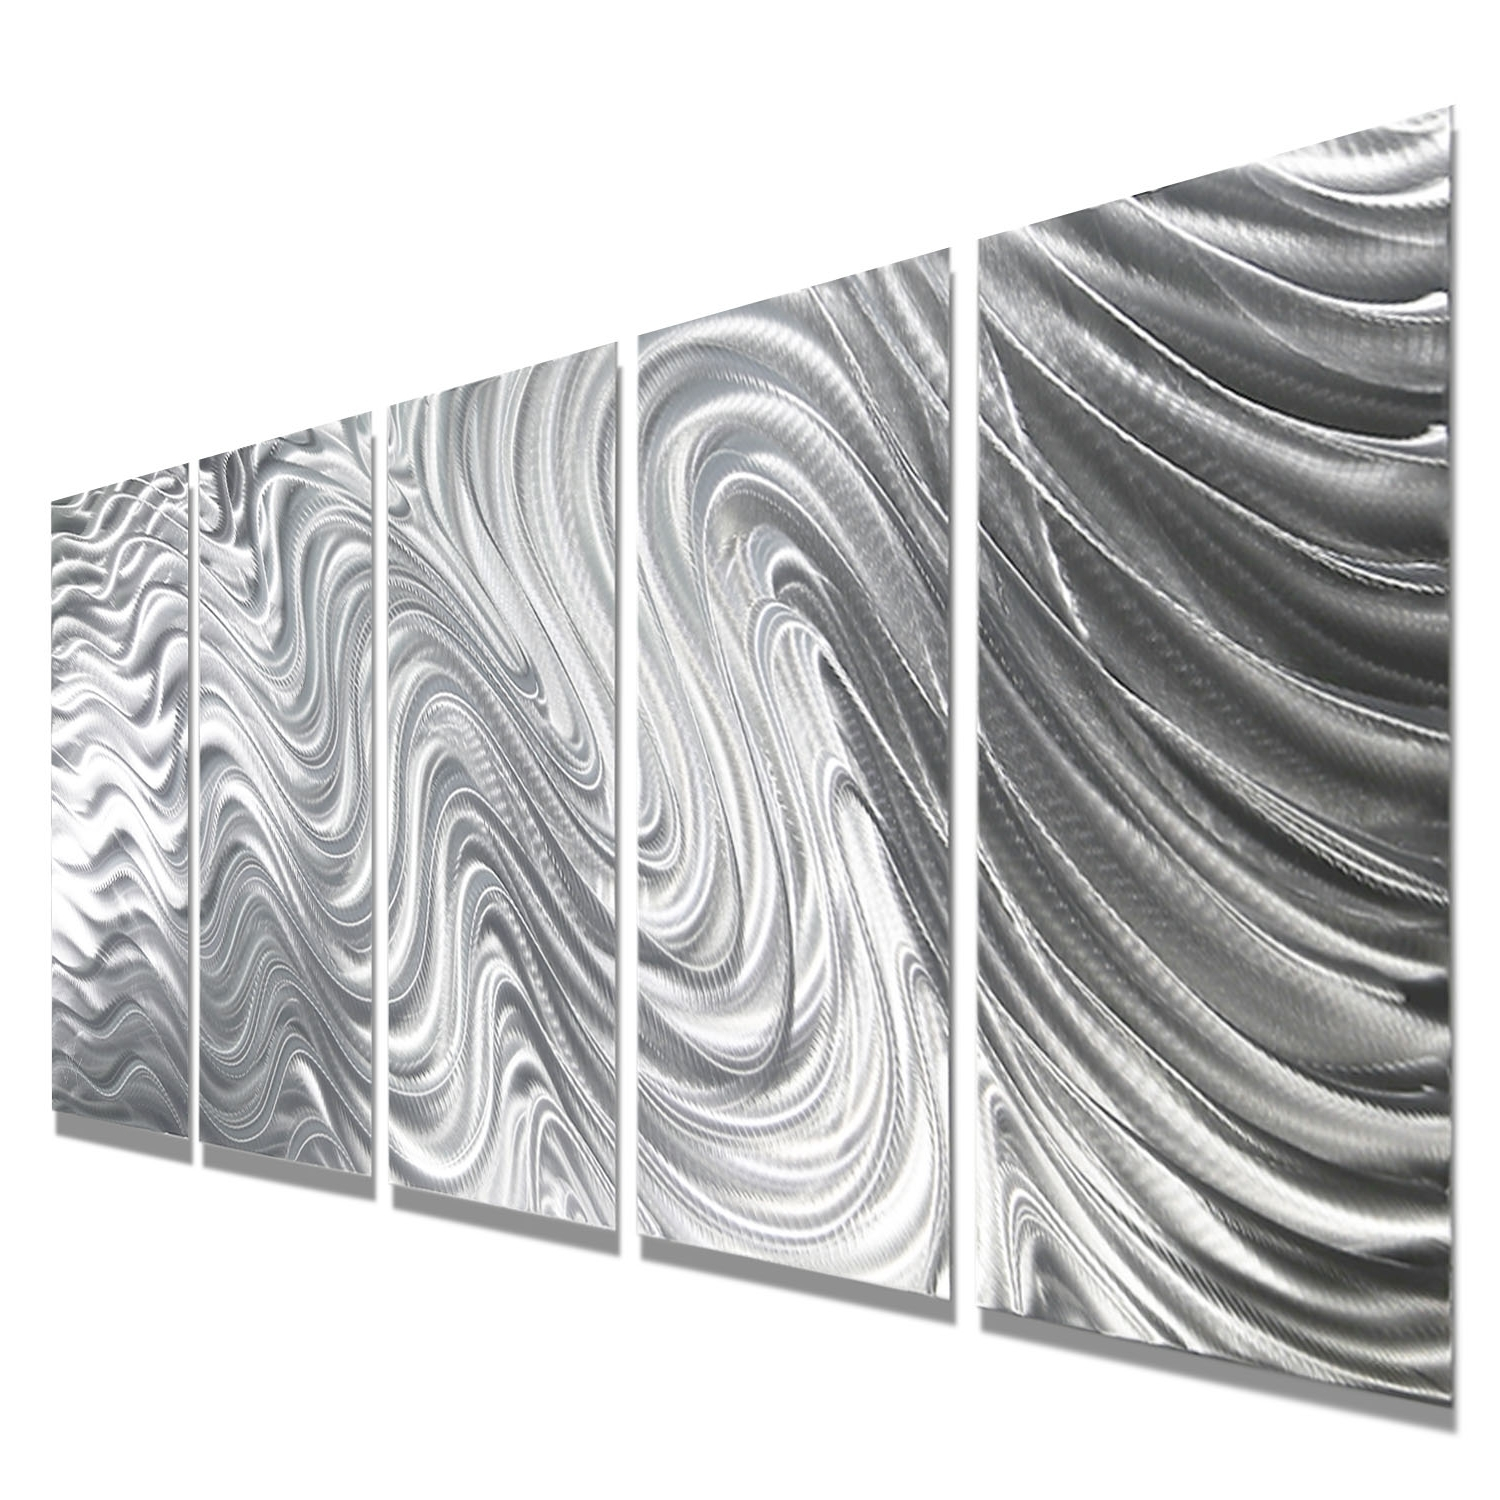 Most Popular Mirage – Silver Metal Wall Art – 5 Panel Wall Décorjon Allen With Regard To Silver Metal Wall Art (View 12 of 15)